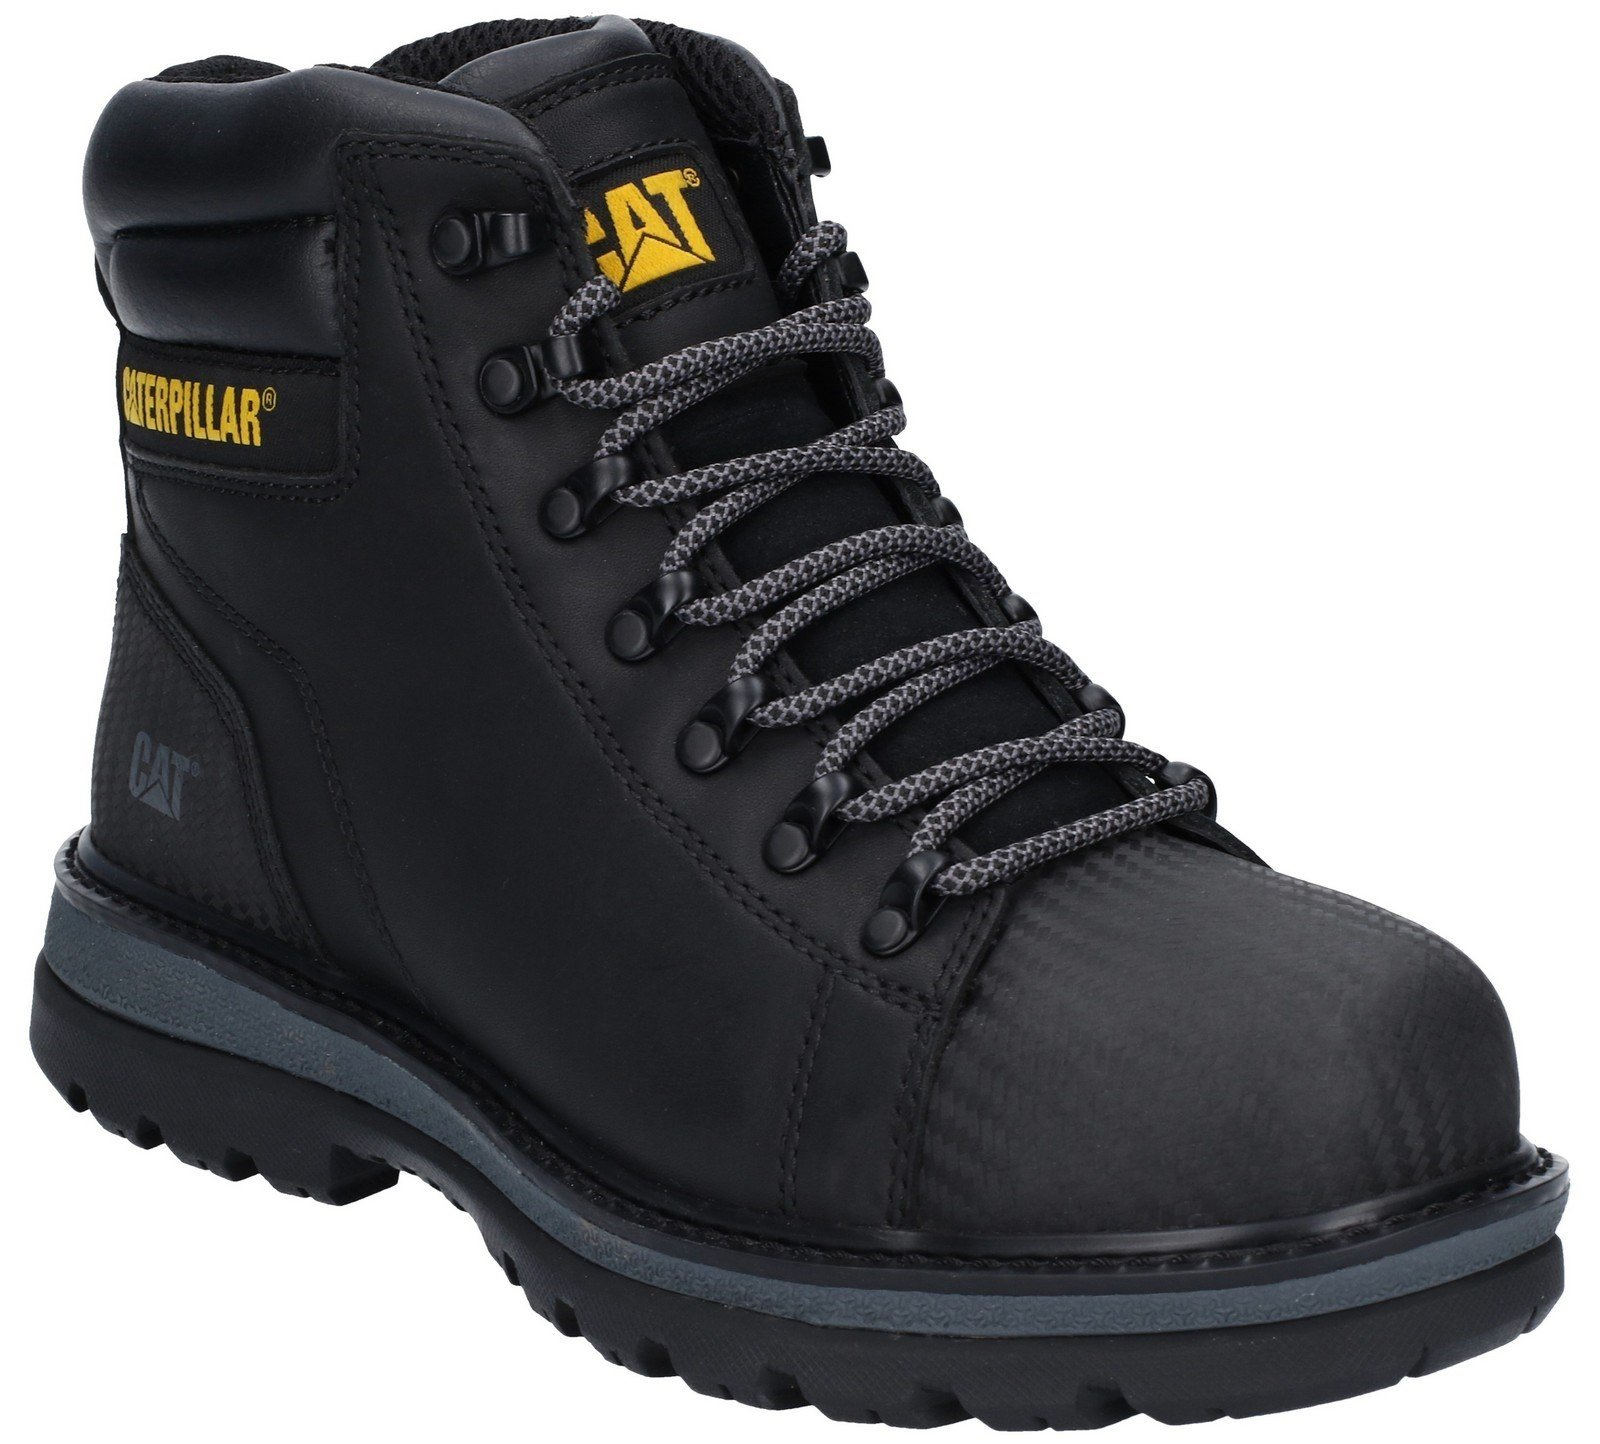 Caterpillar Men's Foxfield Lace Up Safety Boot Black 29660 - Black 6